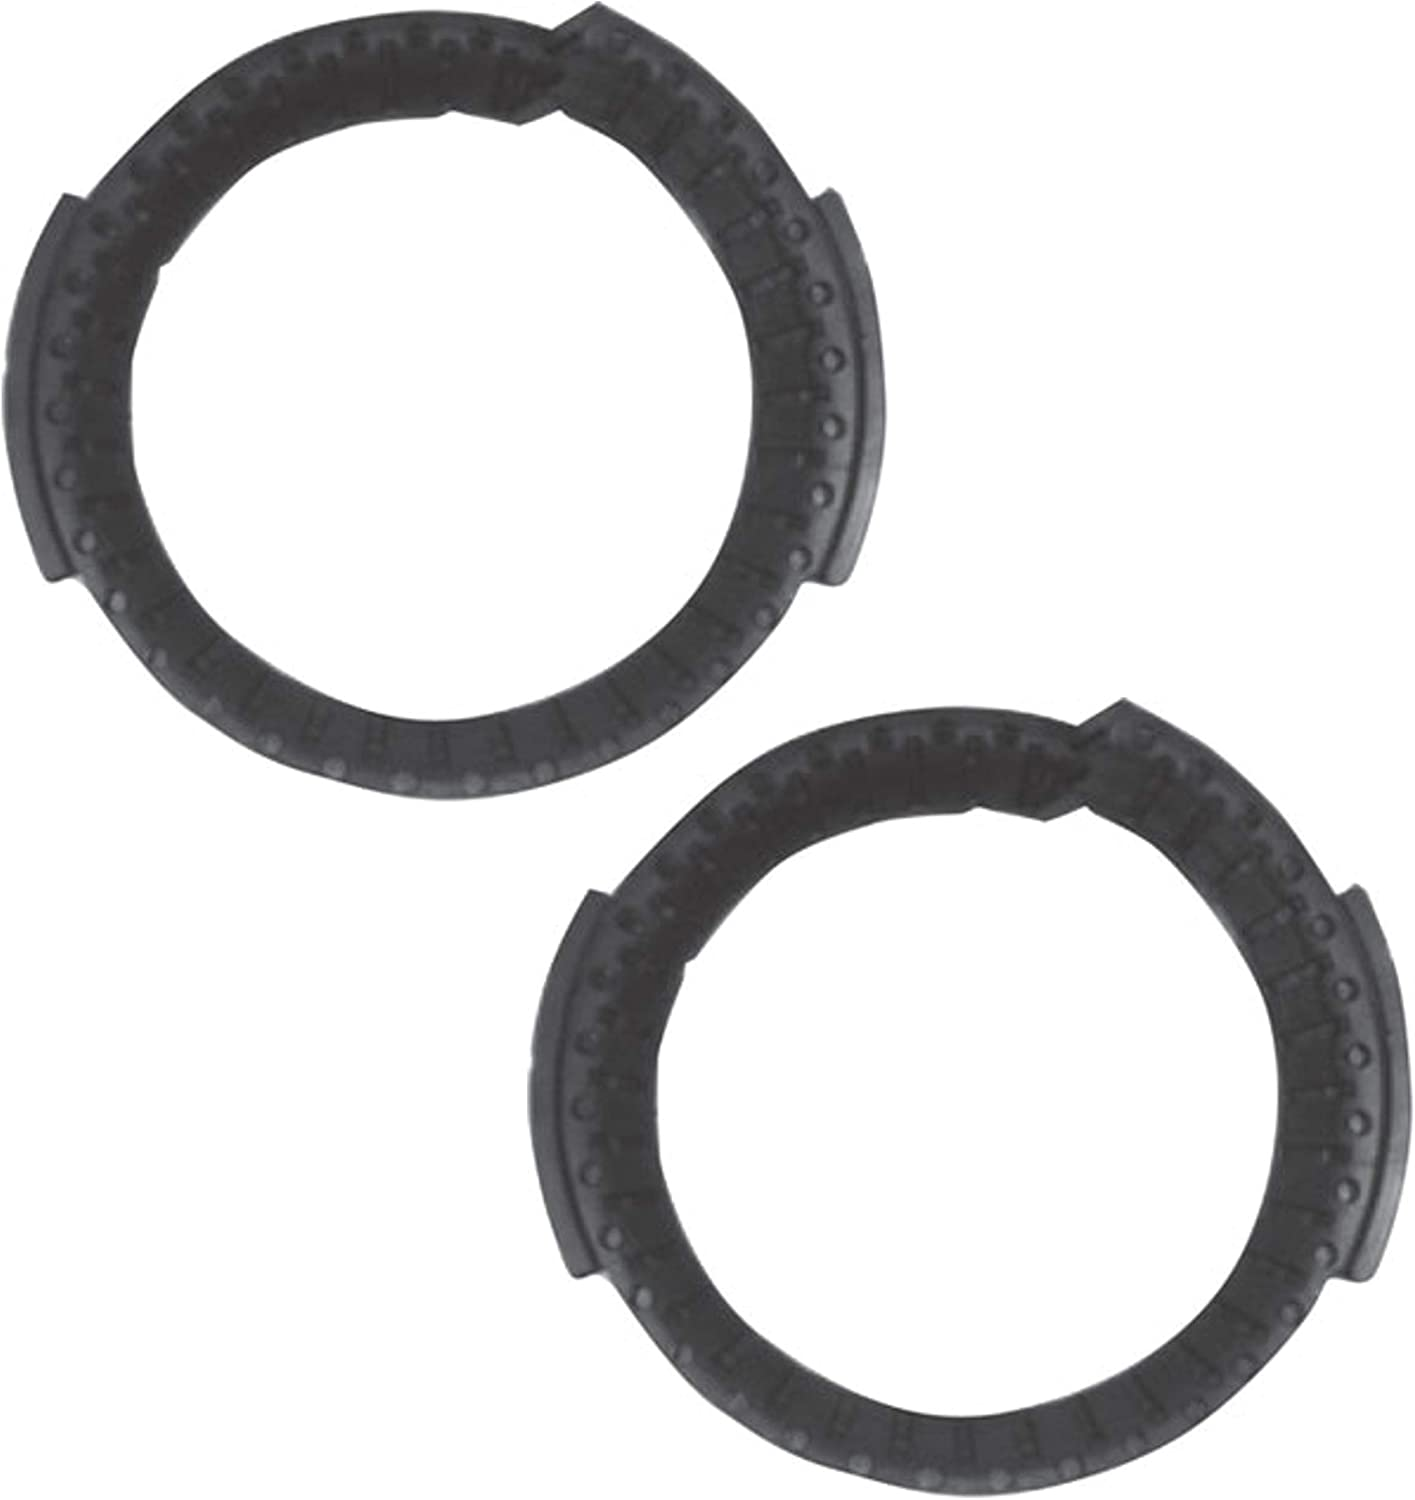 Pair Set of 2 Rear Lower KYB Coil Spring Insulator For Chrysler Dodge Plymouth Neon